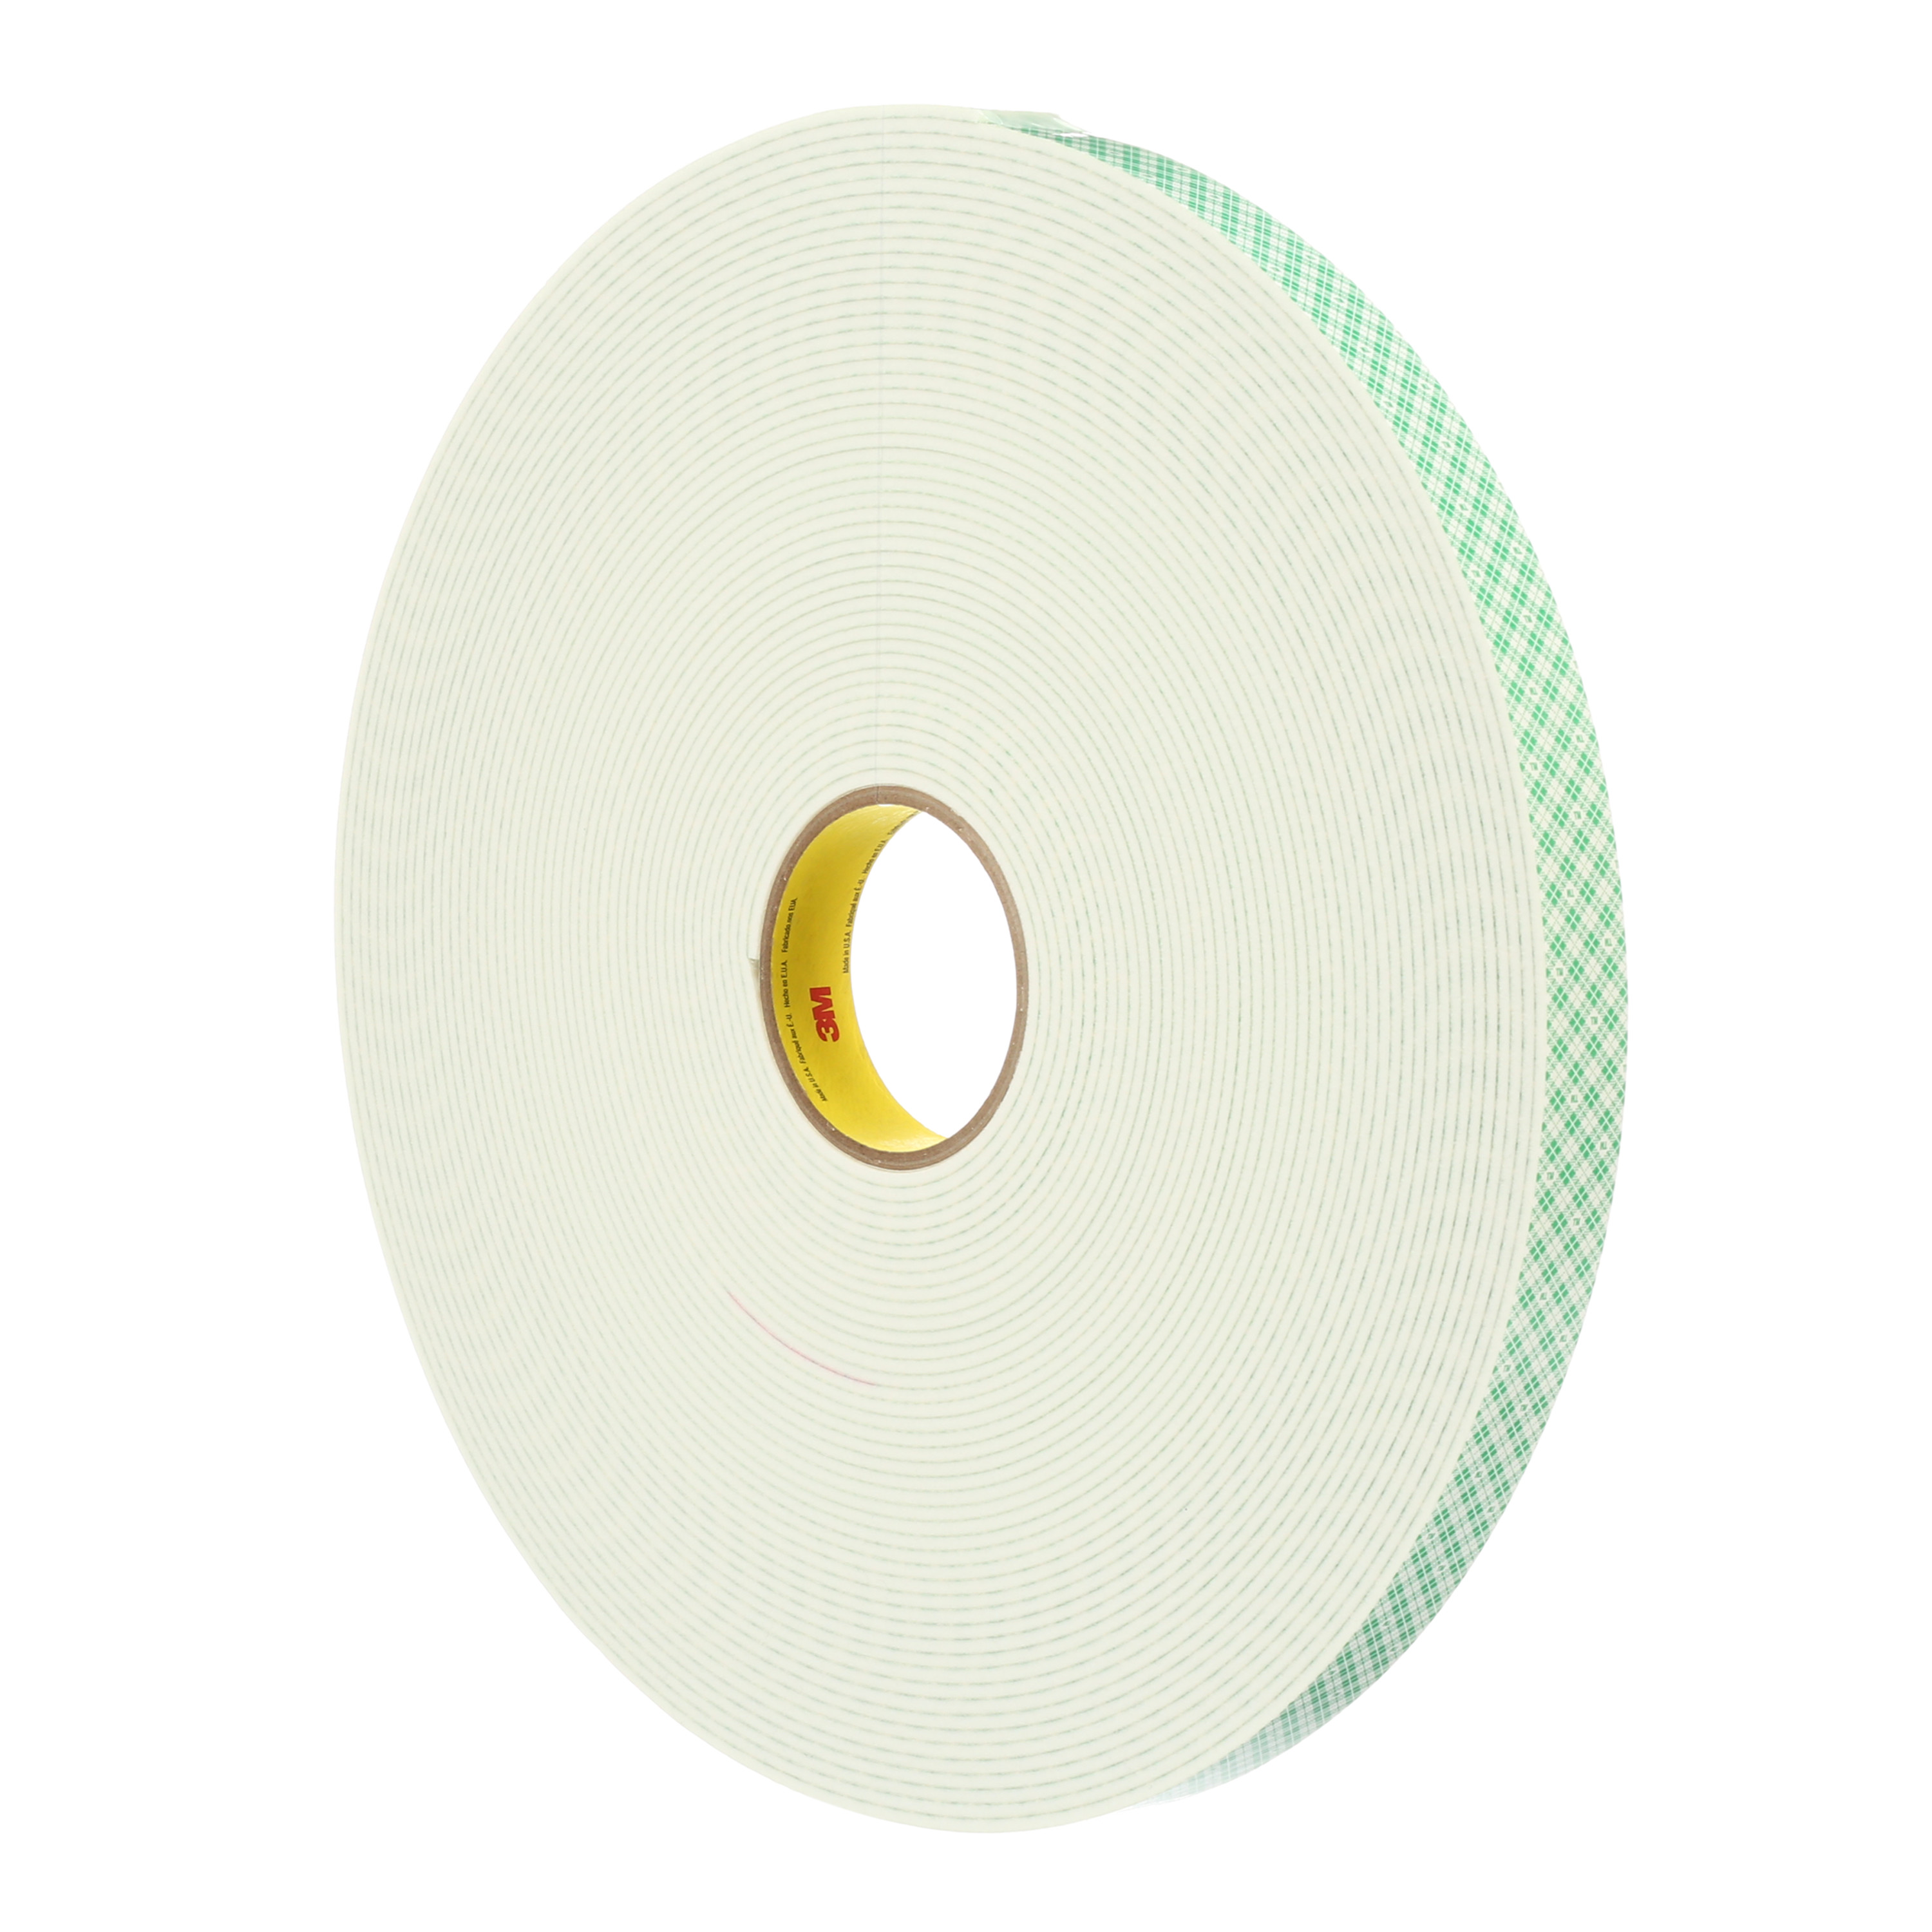 3M™ Double Coated Urethane Foam Tape 4008, Off White, 125 mil, Roll, Config